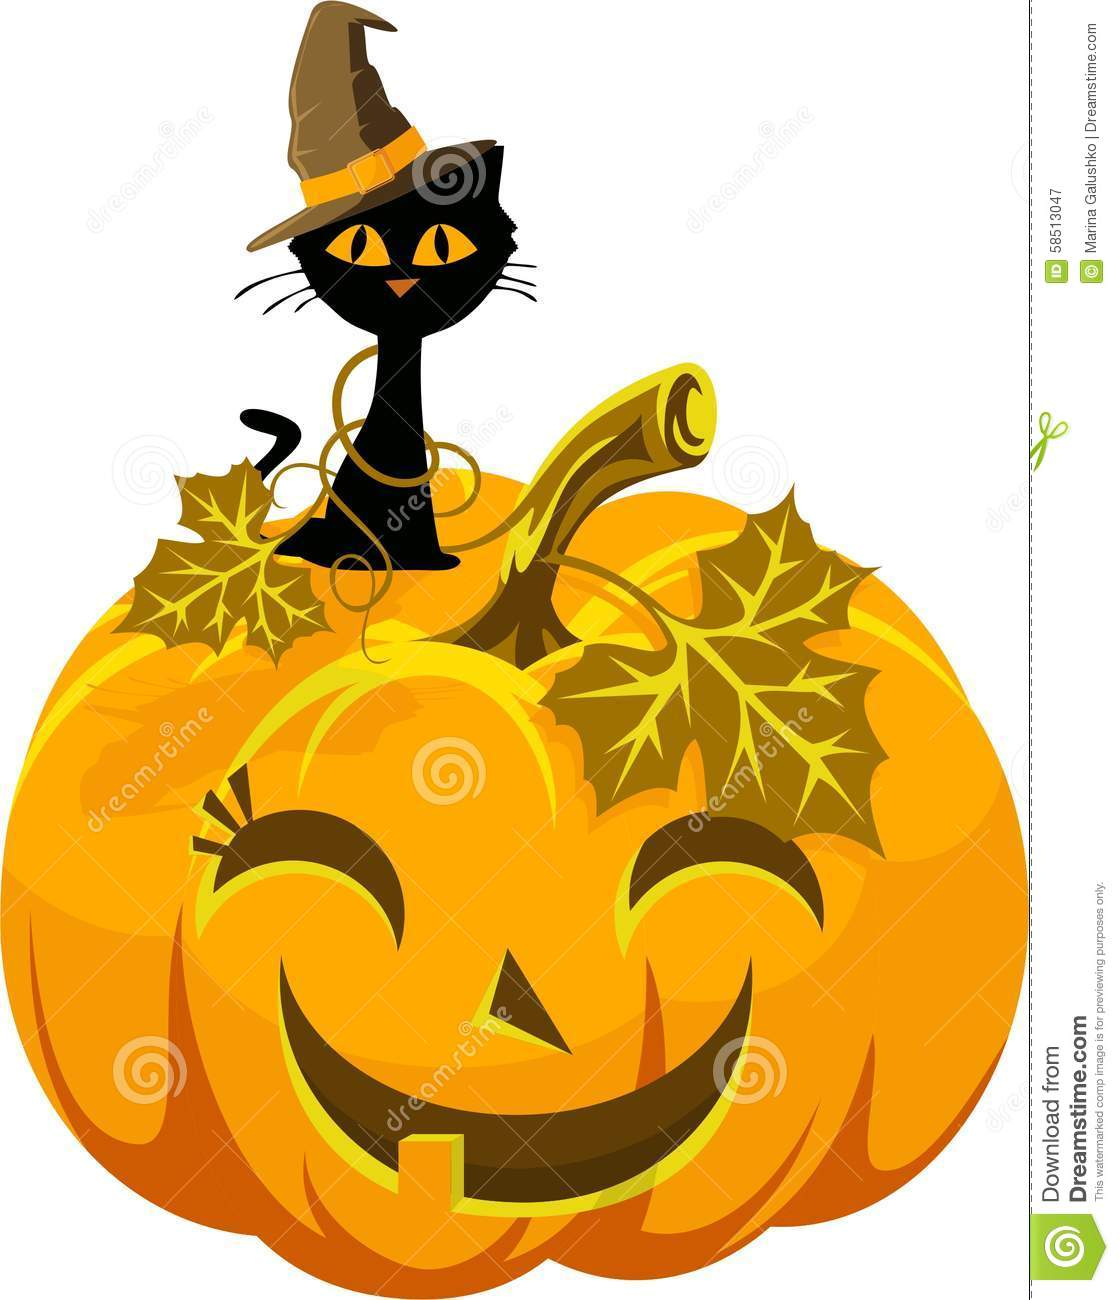 Poster funny pumpkin and cat in the hat halloween stock for Funny pumpkin drawings